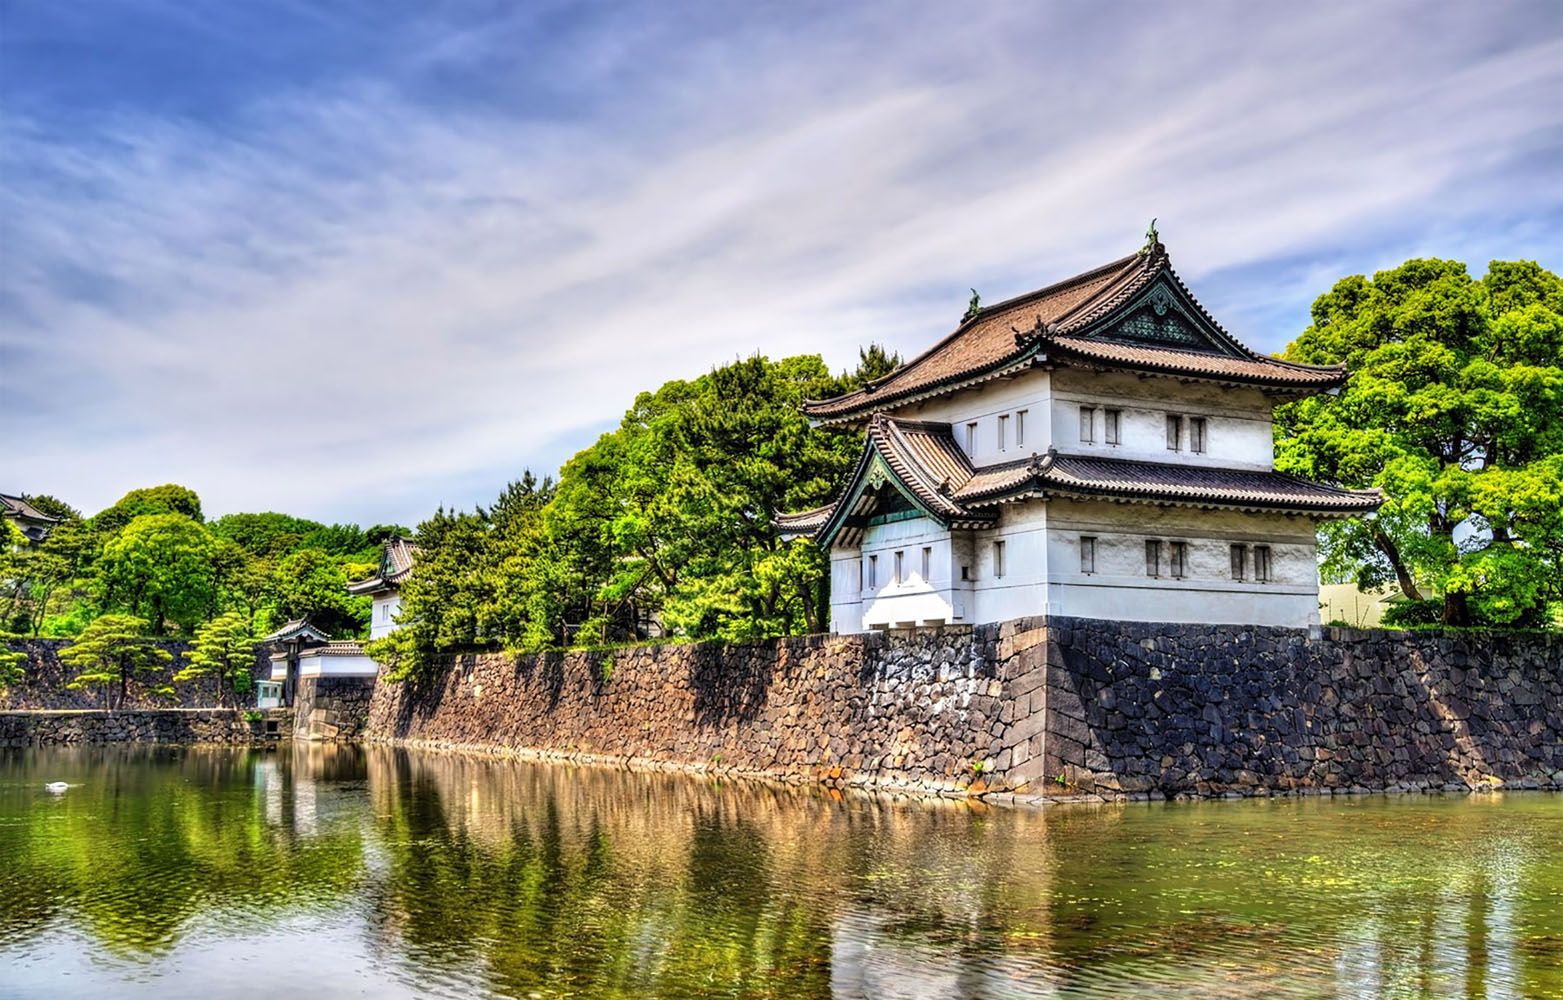 A Japanese castle near the water on a sunny day